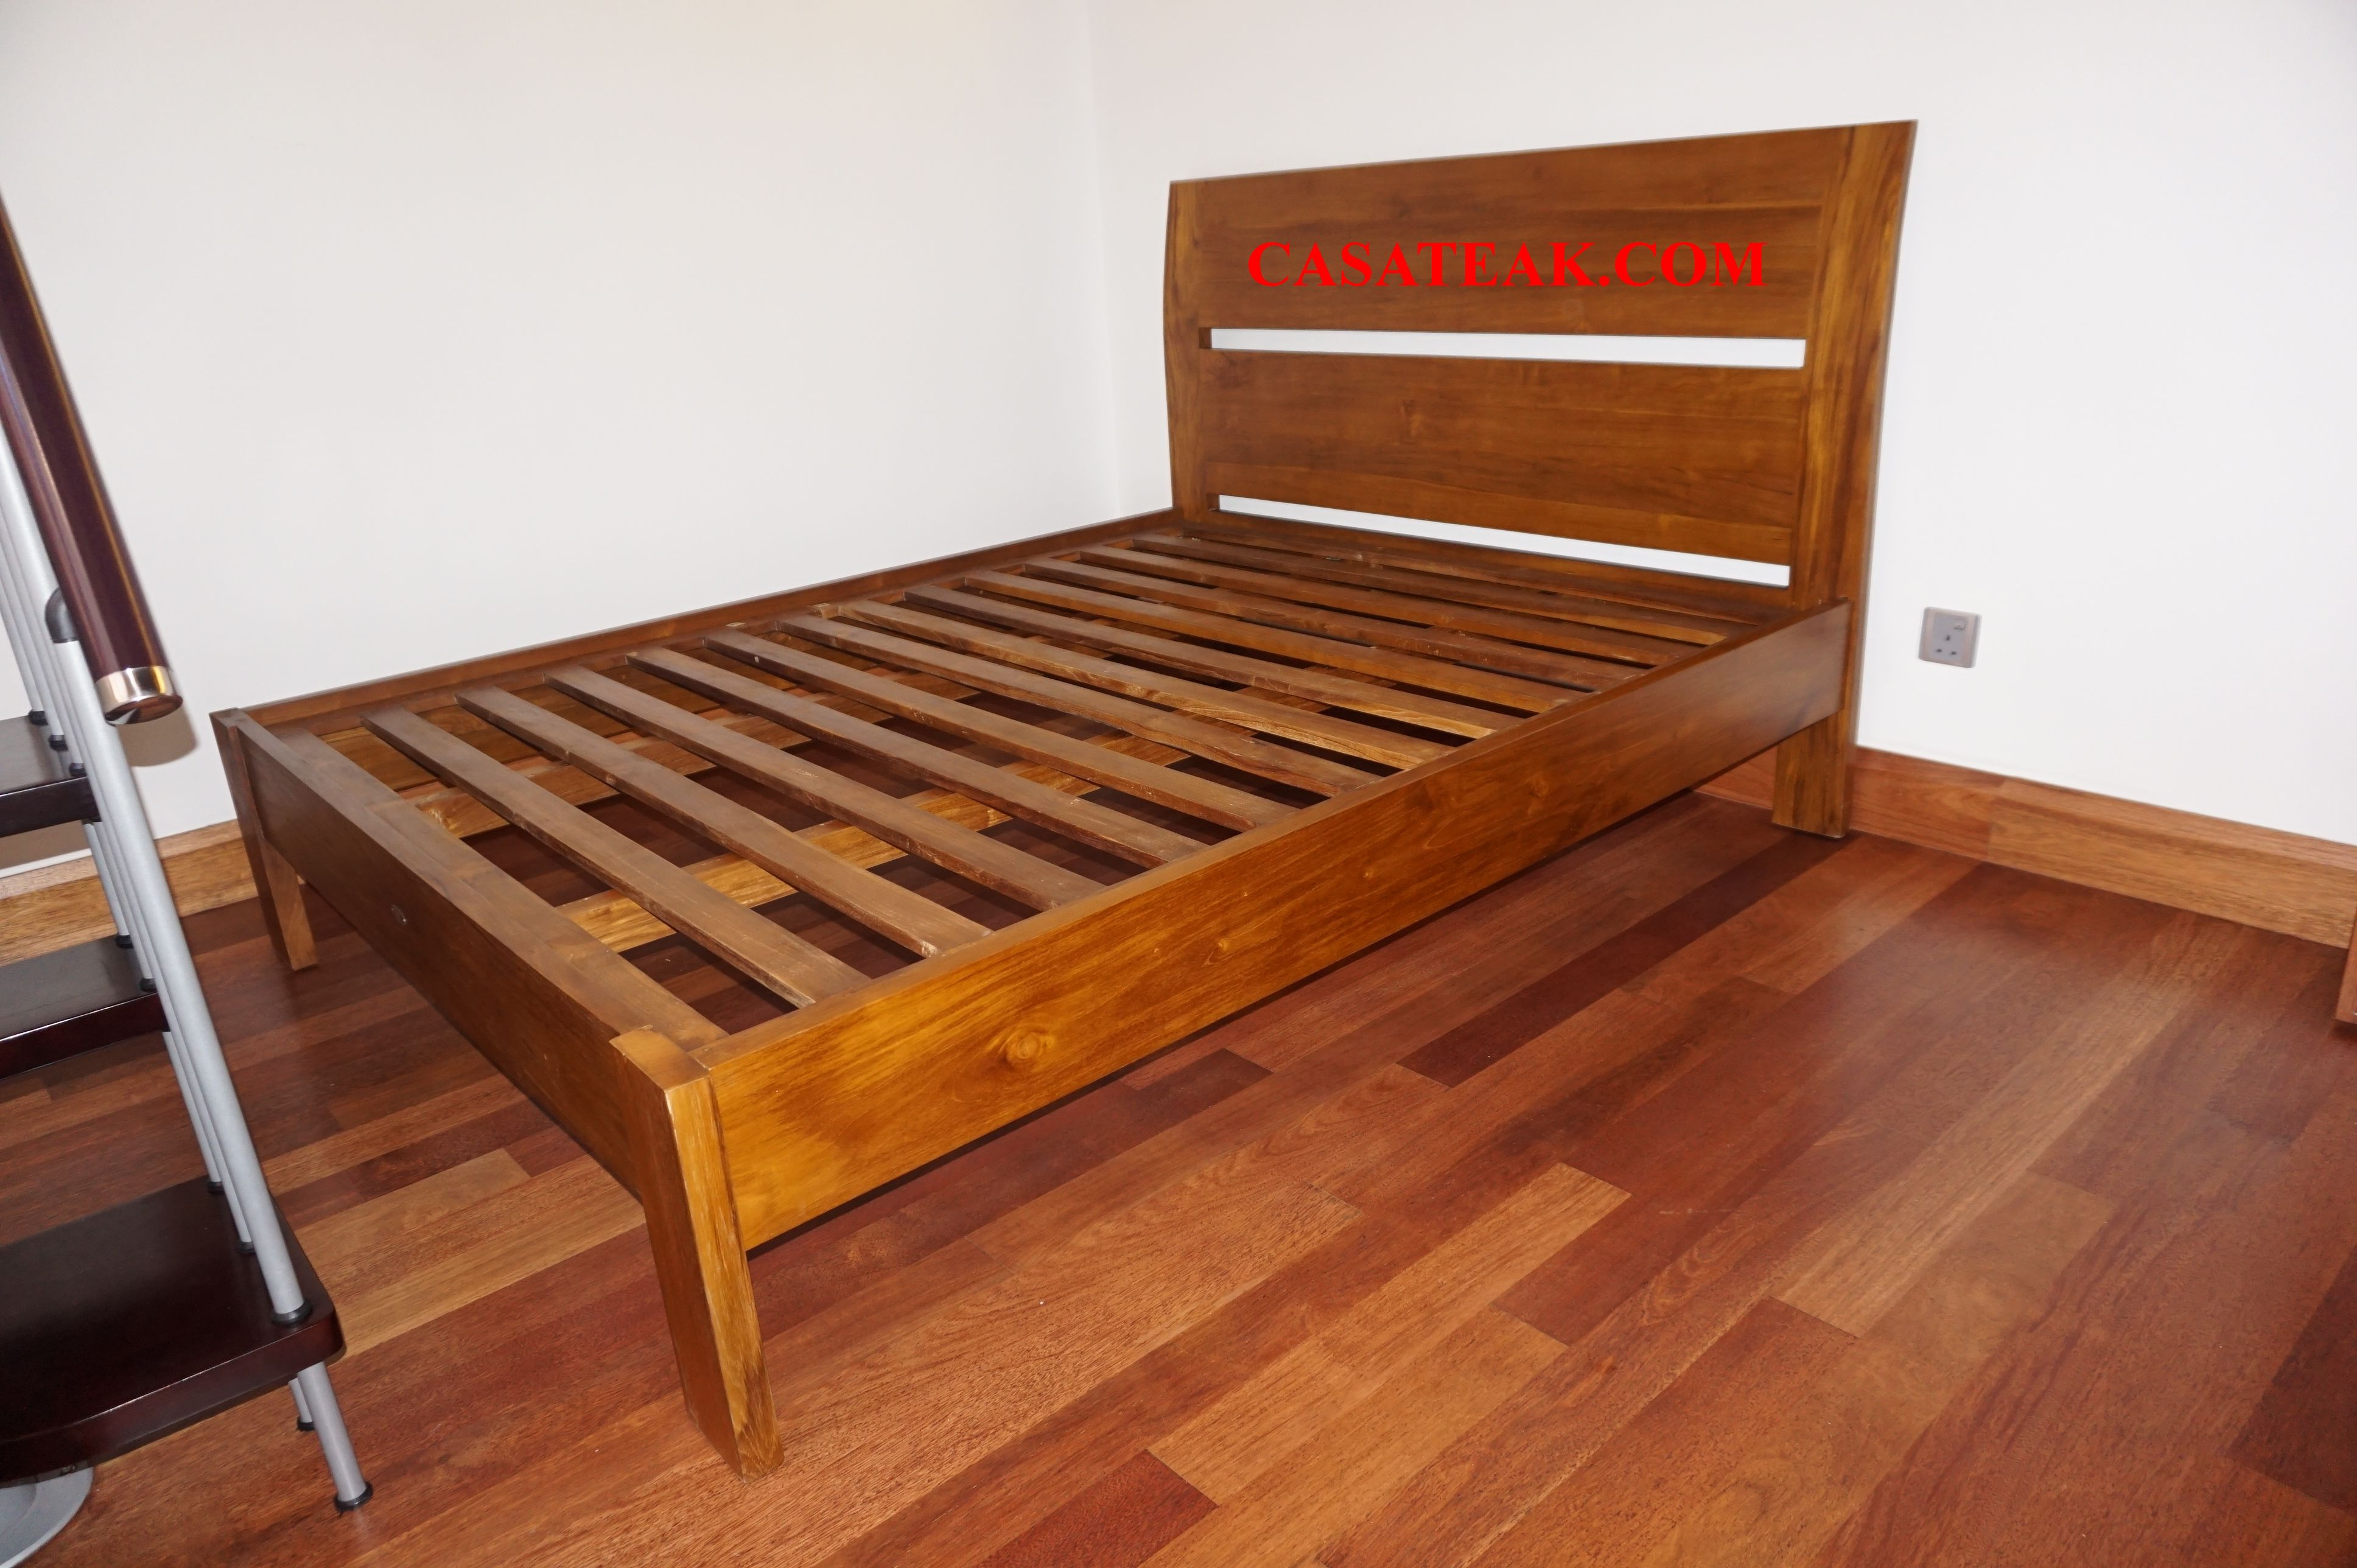 indian bedroom furniture catalogue%0A Teak Wood Bedroom Set in Malaysia              Teak wood bedroom furniture  Selangor Malaysia   Pinterest   Teak wood  Wood bedroom and Wood bedroom  sets